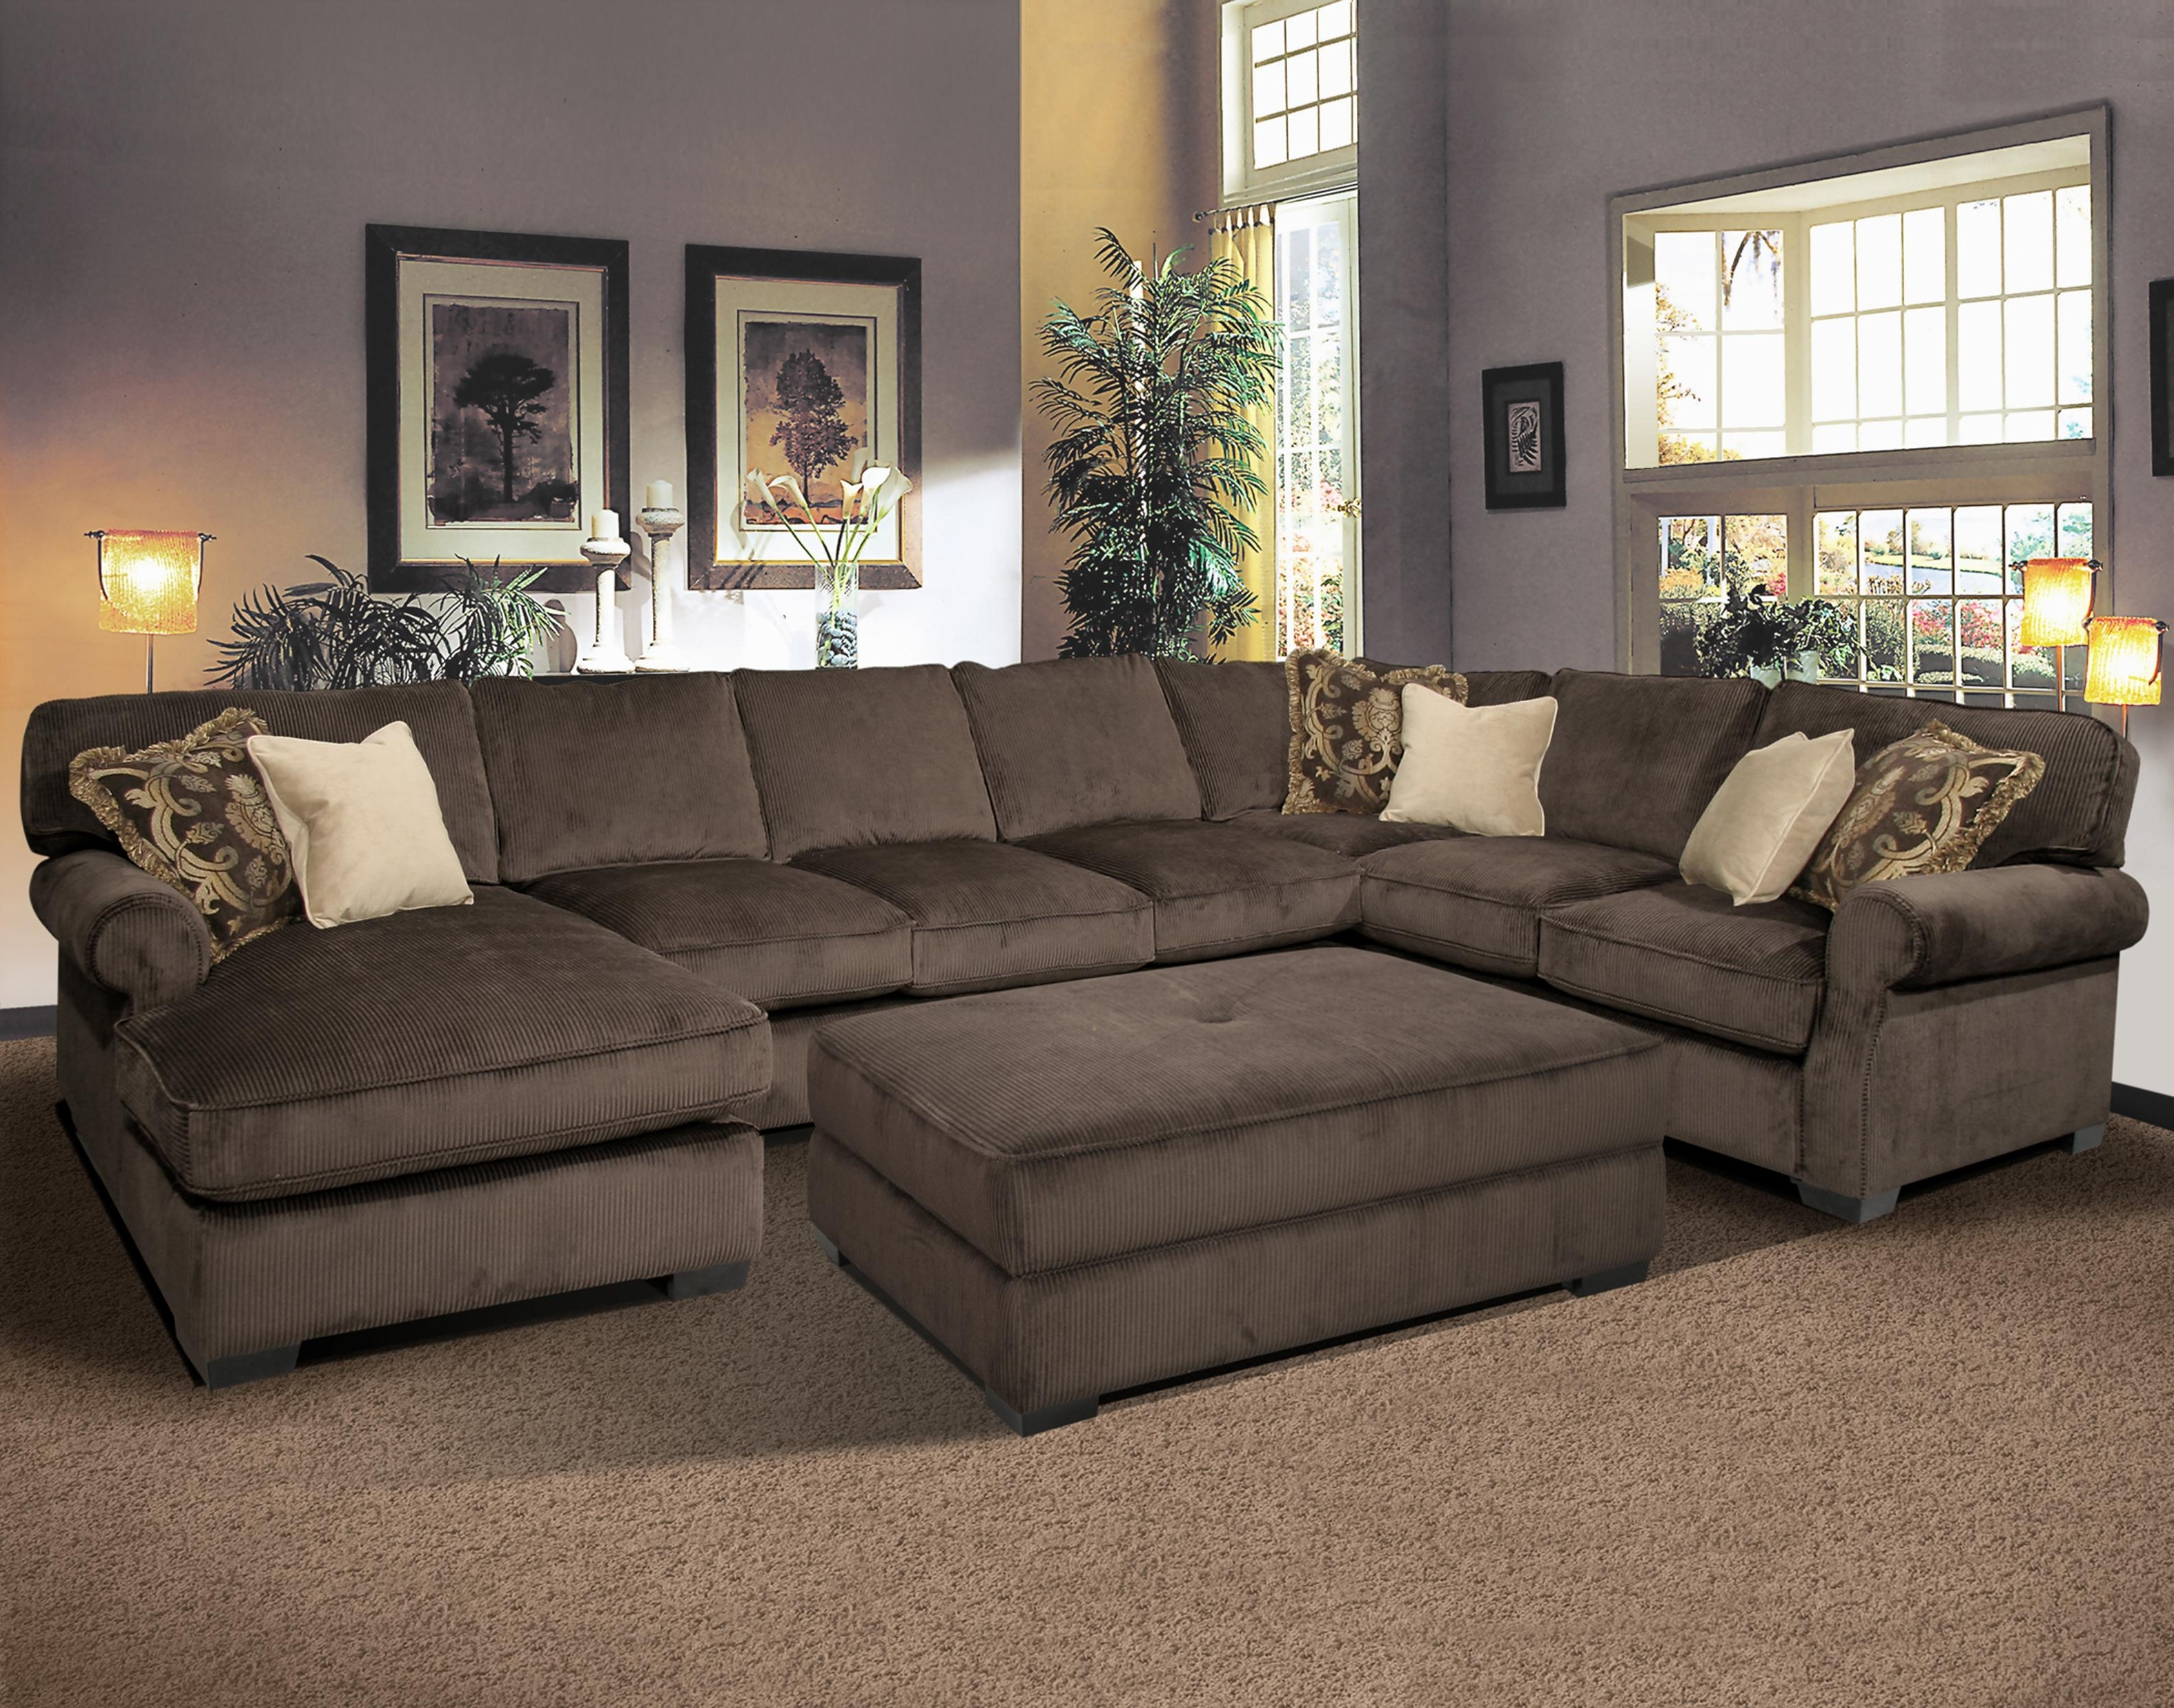 Extra Large U Shaped Sectionals In 2018 Sectional Couch With Recliner Ikea Couch Bed Large Leather (View 15 of 20)